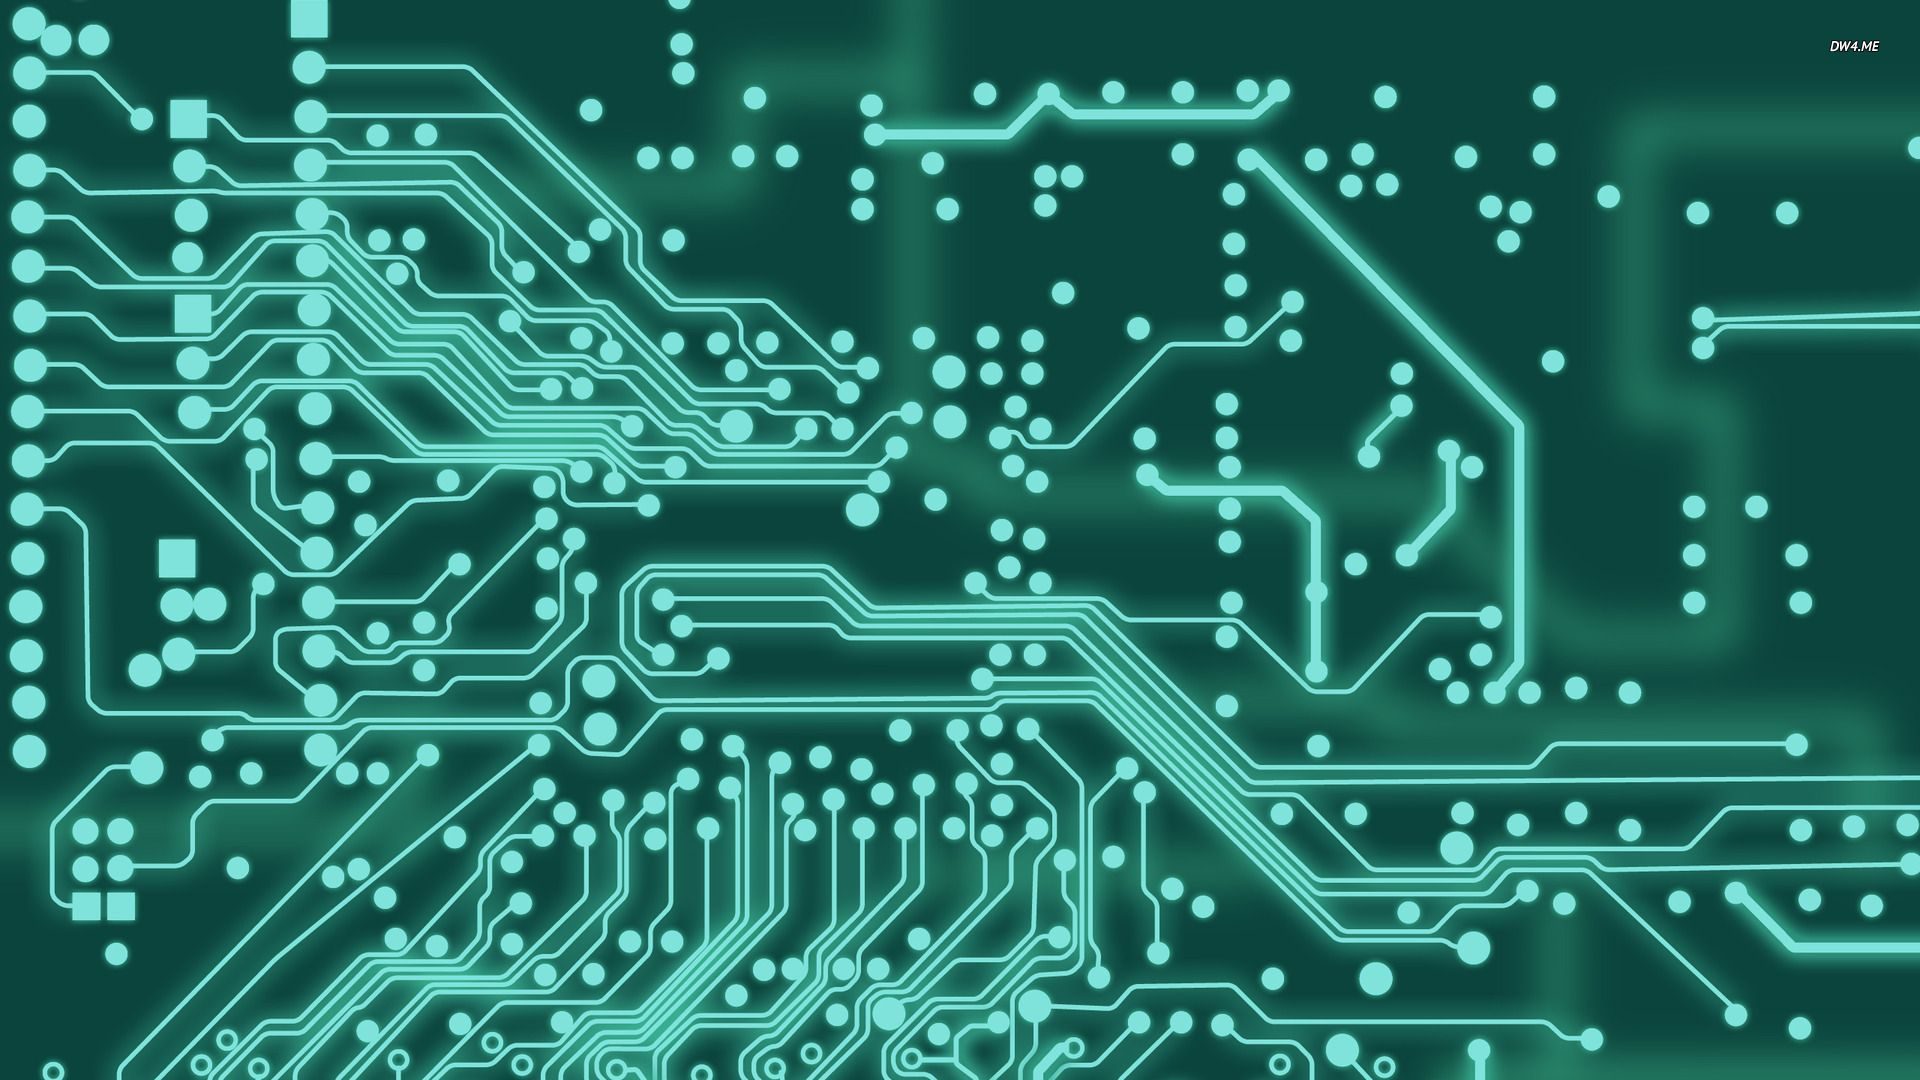 circuit board circuit board wallpaper 2560x1600 more circuitcircuit board circuit board wallpaper 2560x1600 more